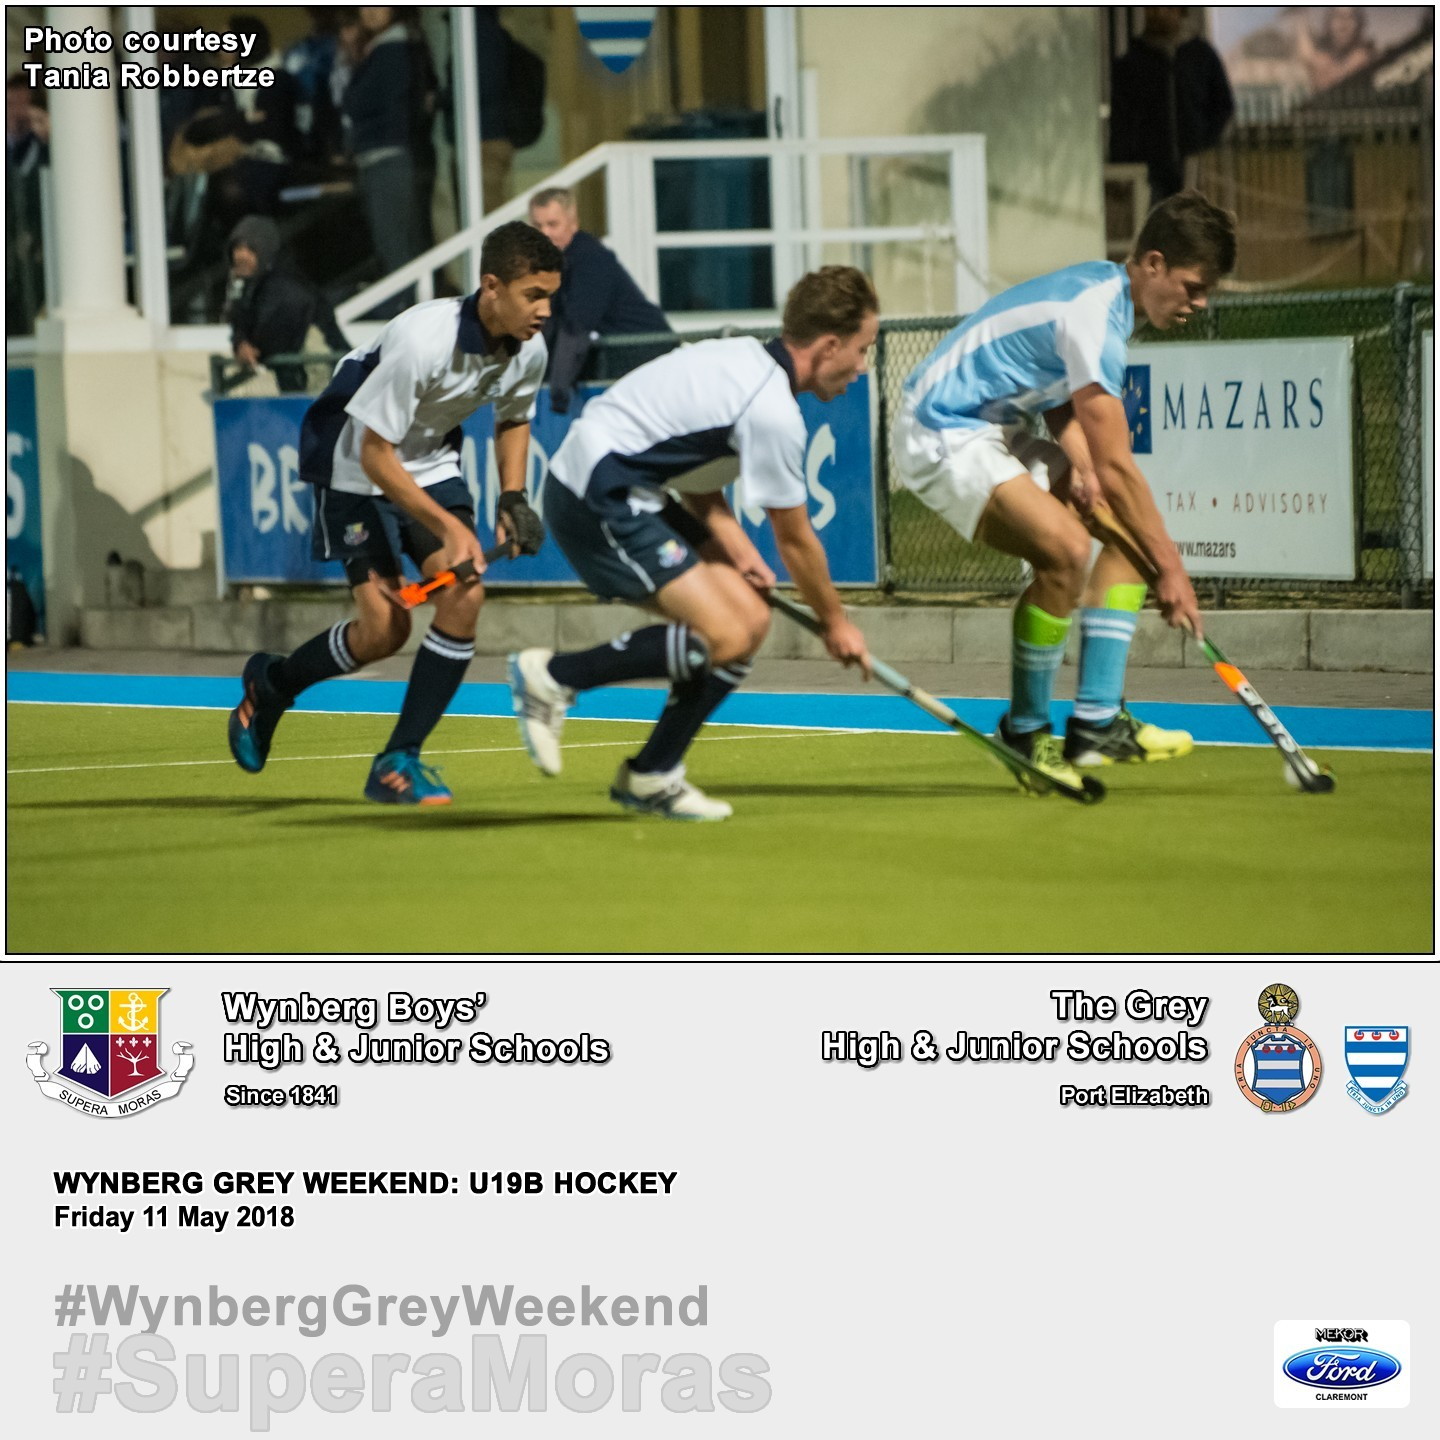 U19B vs Grey High, Friday 11 May 2018